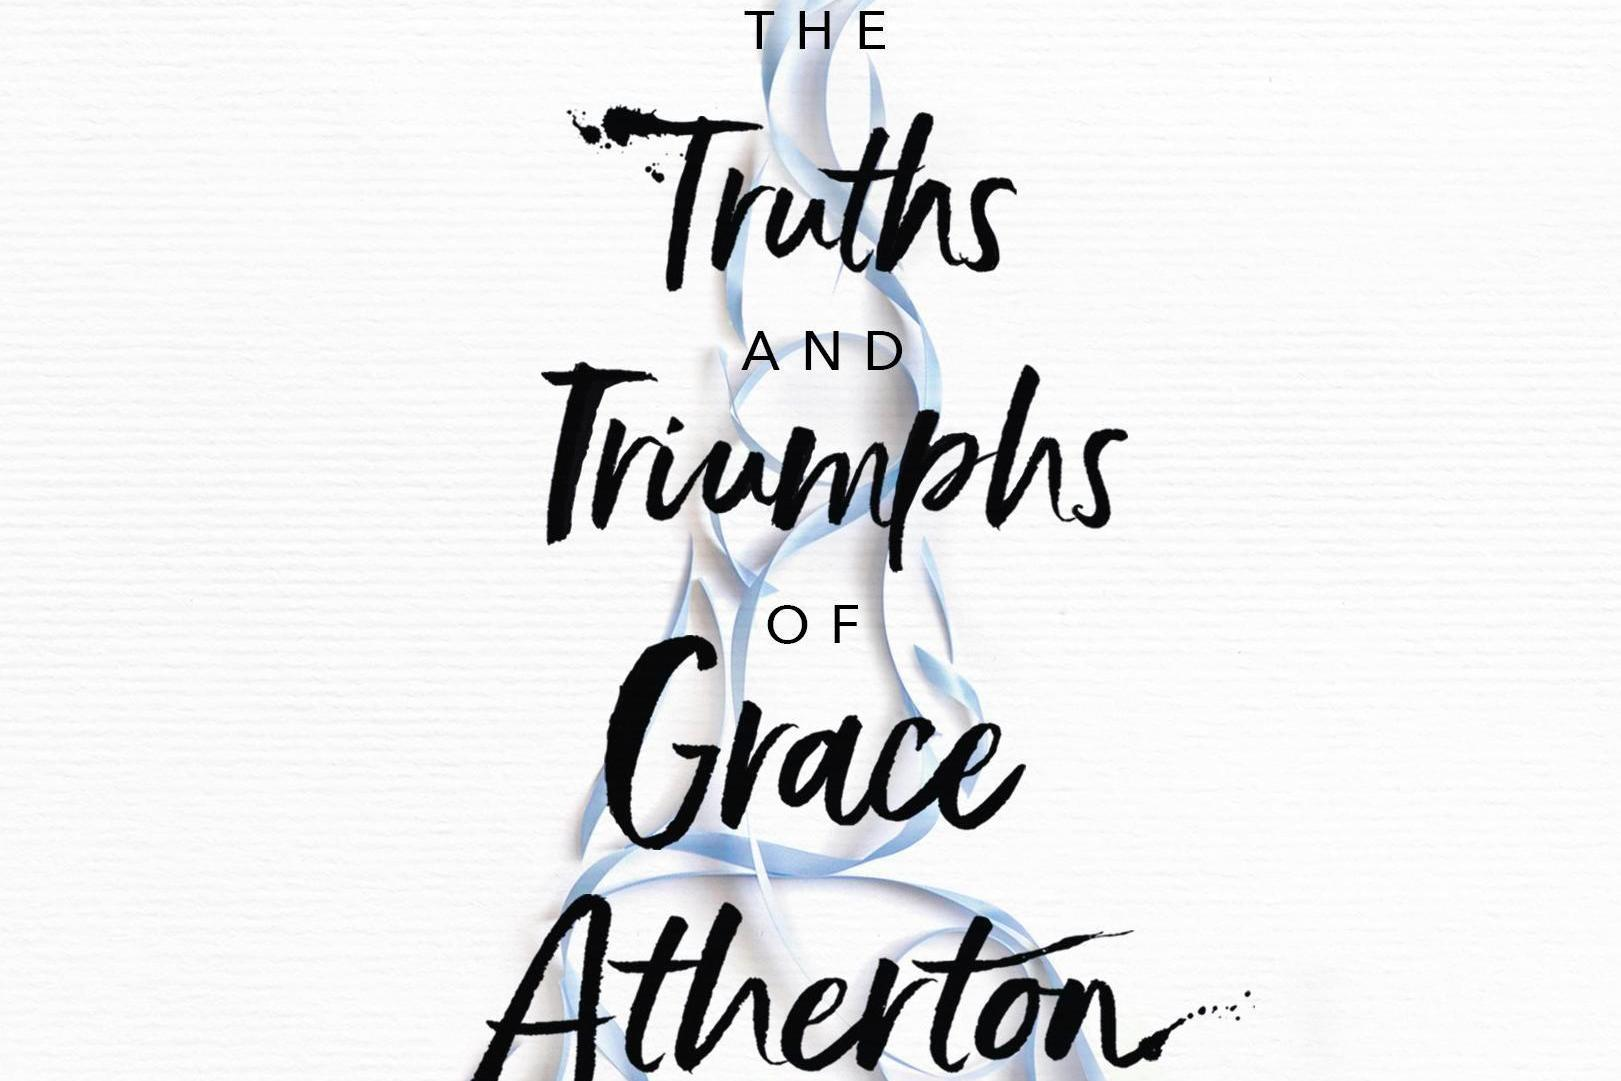 Win a copy of The Truths and Triumphs of Grace Atherton by